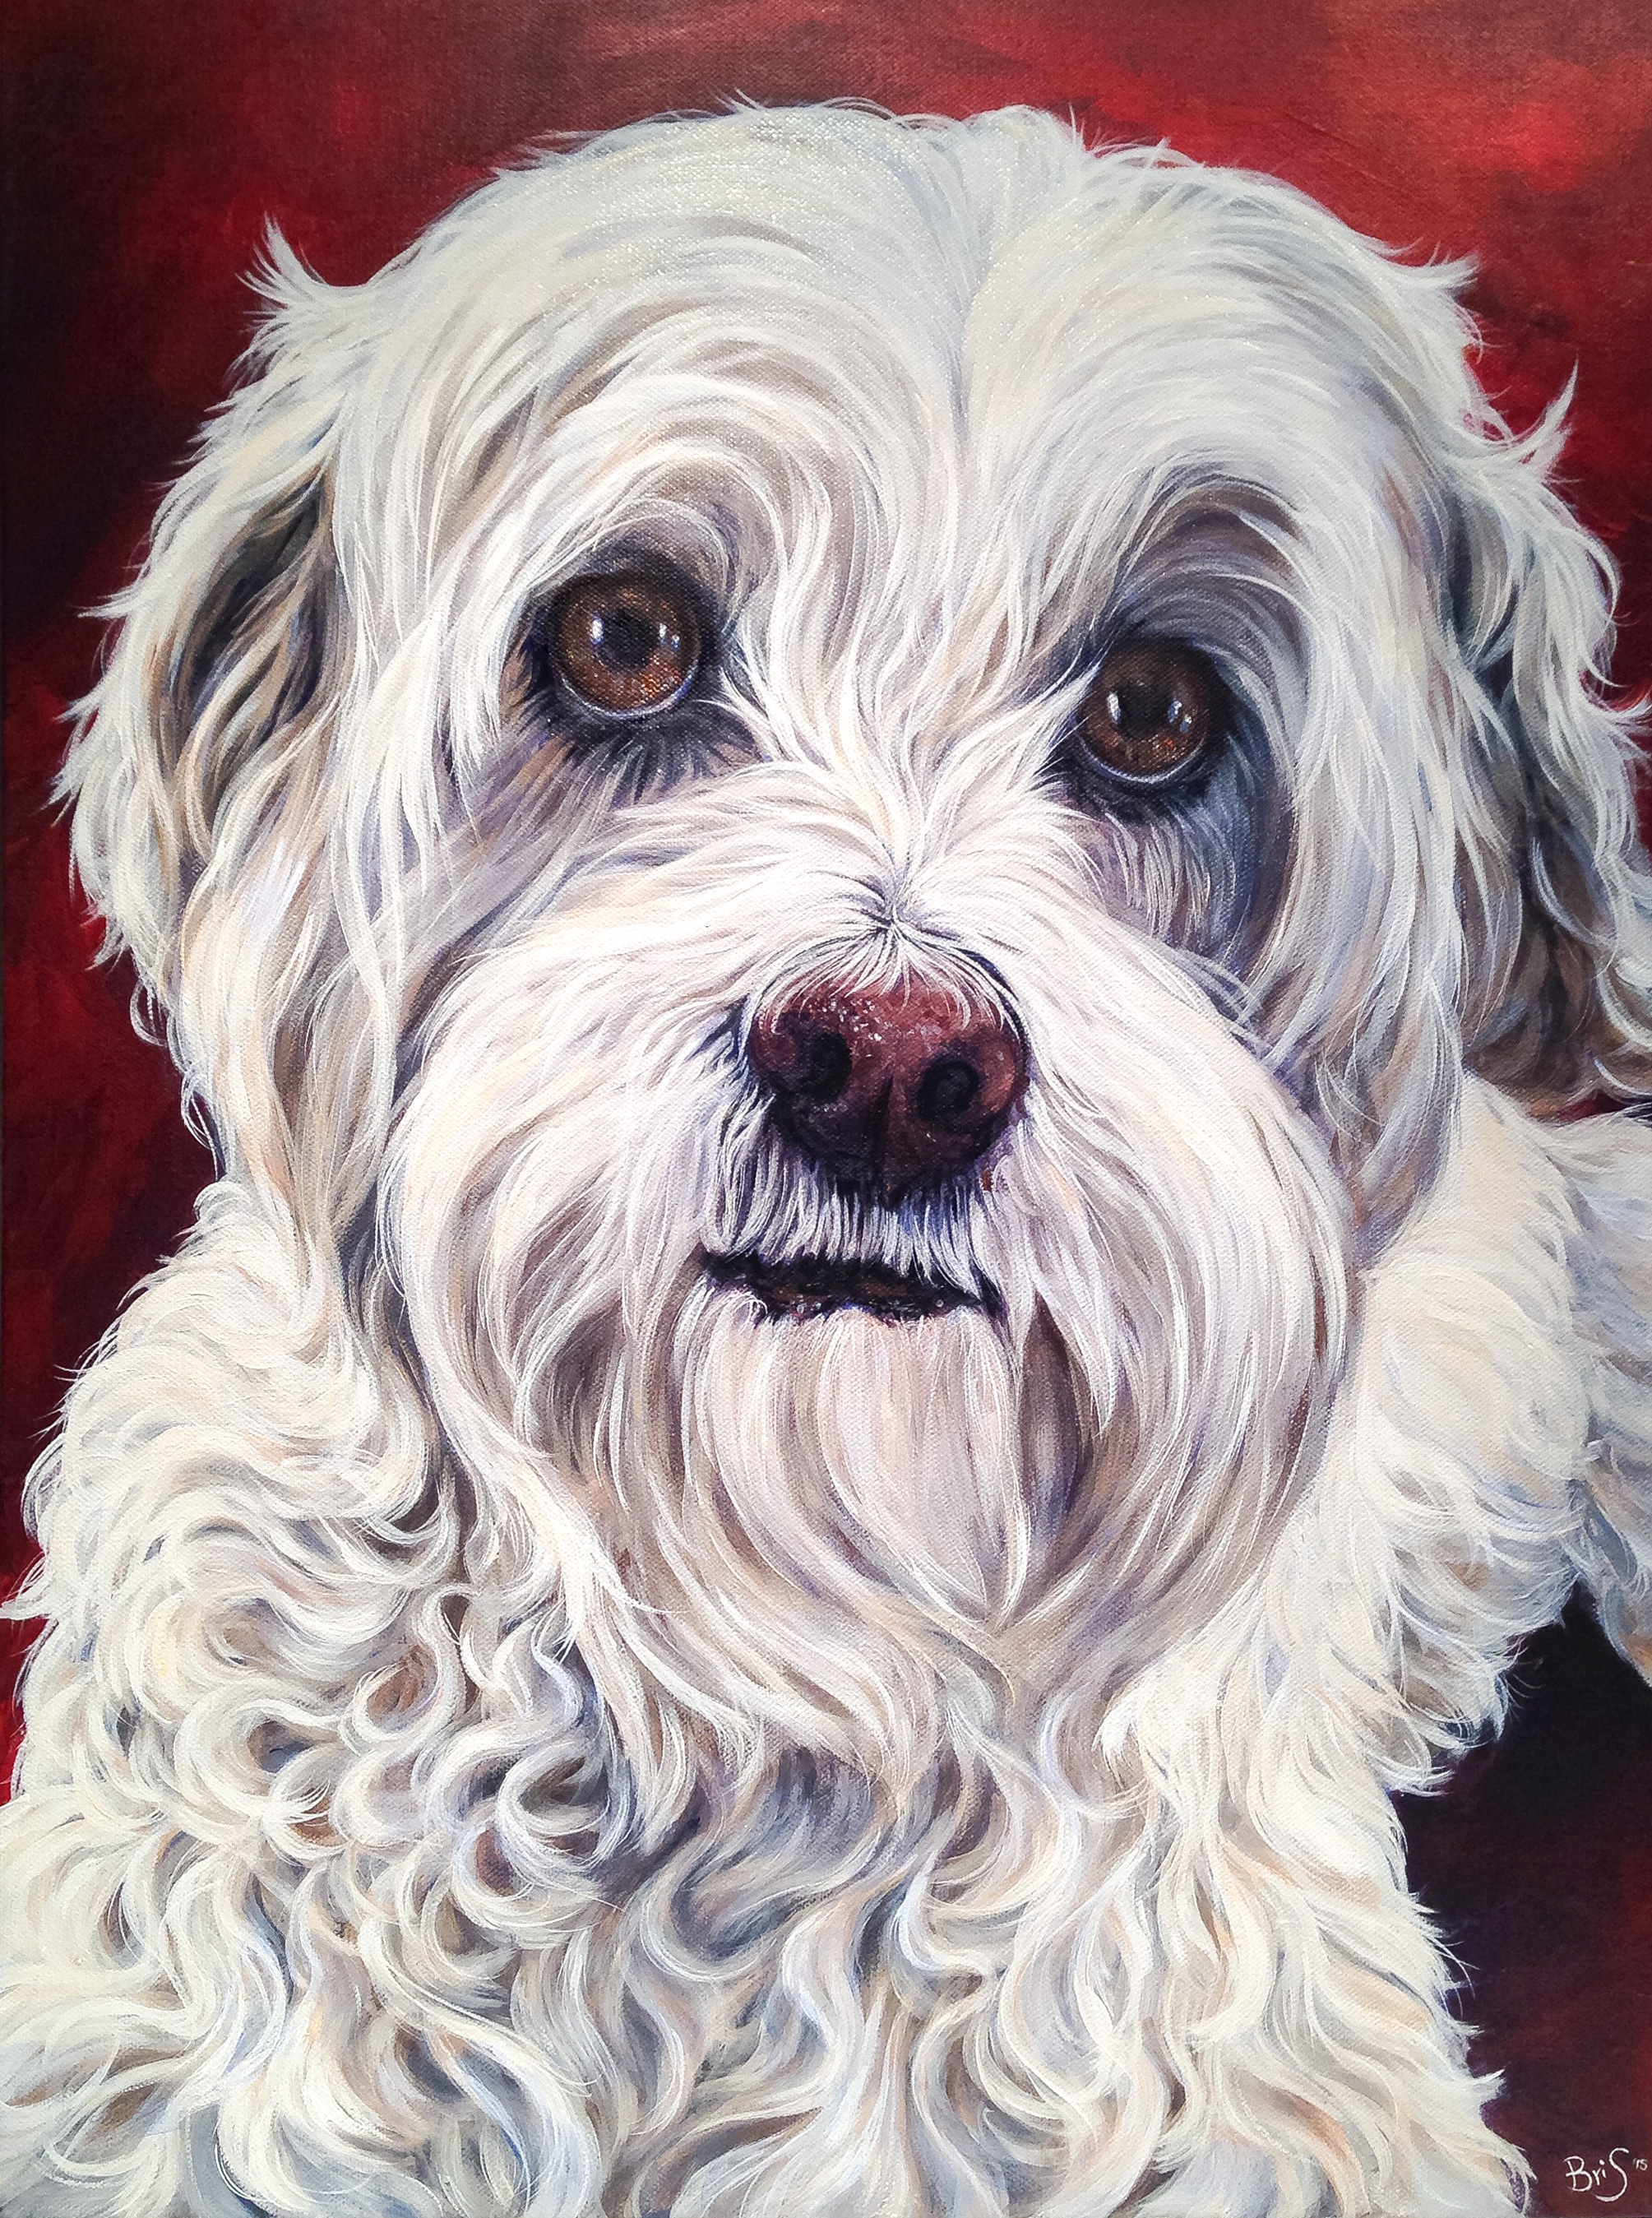 18 by 24 inch dog portrait